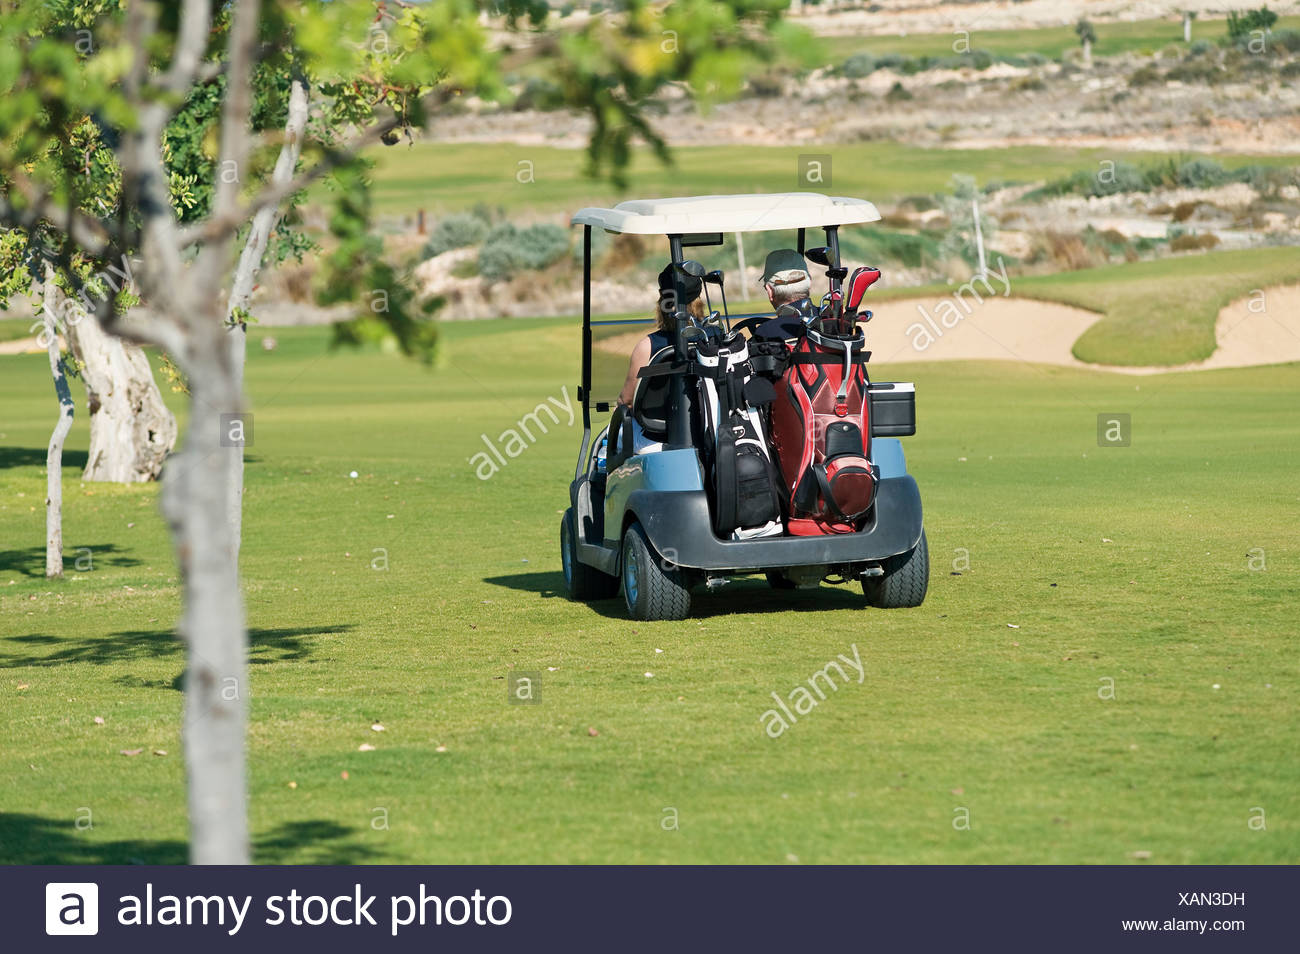 Cyprus, Man and woman sitting in golf cart - Stock Image